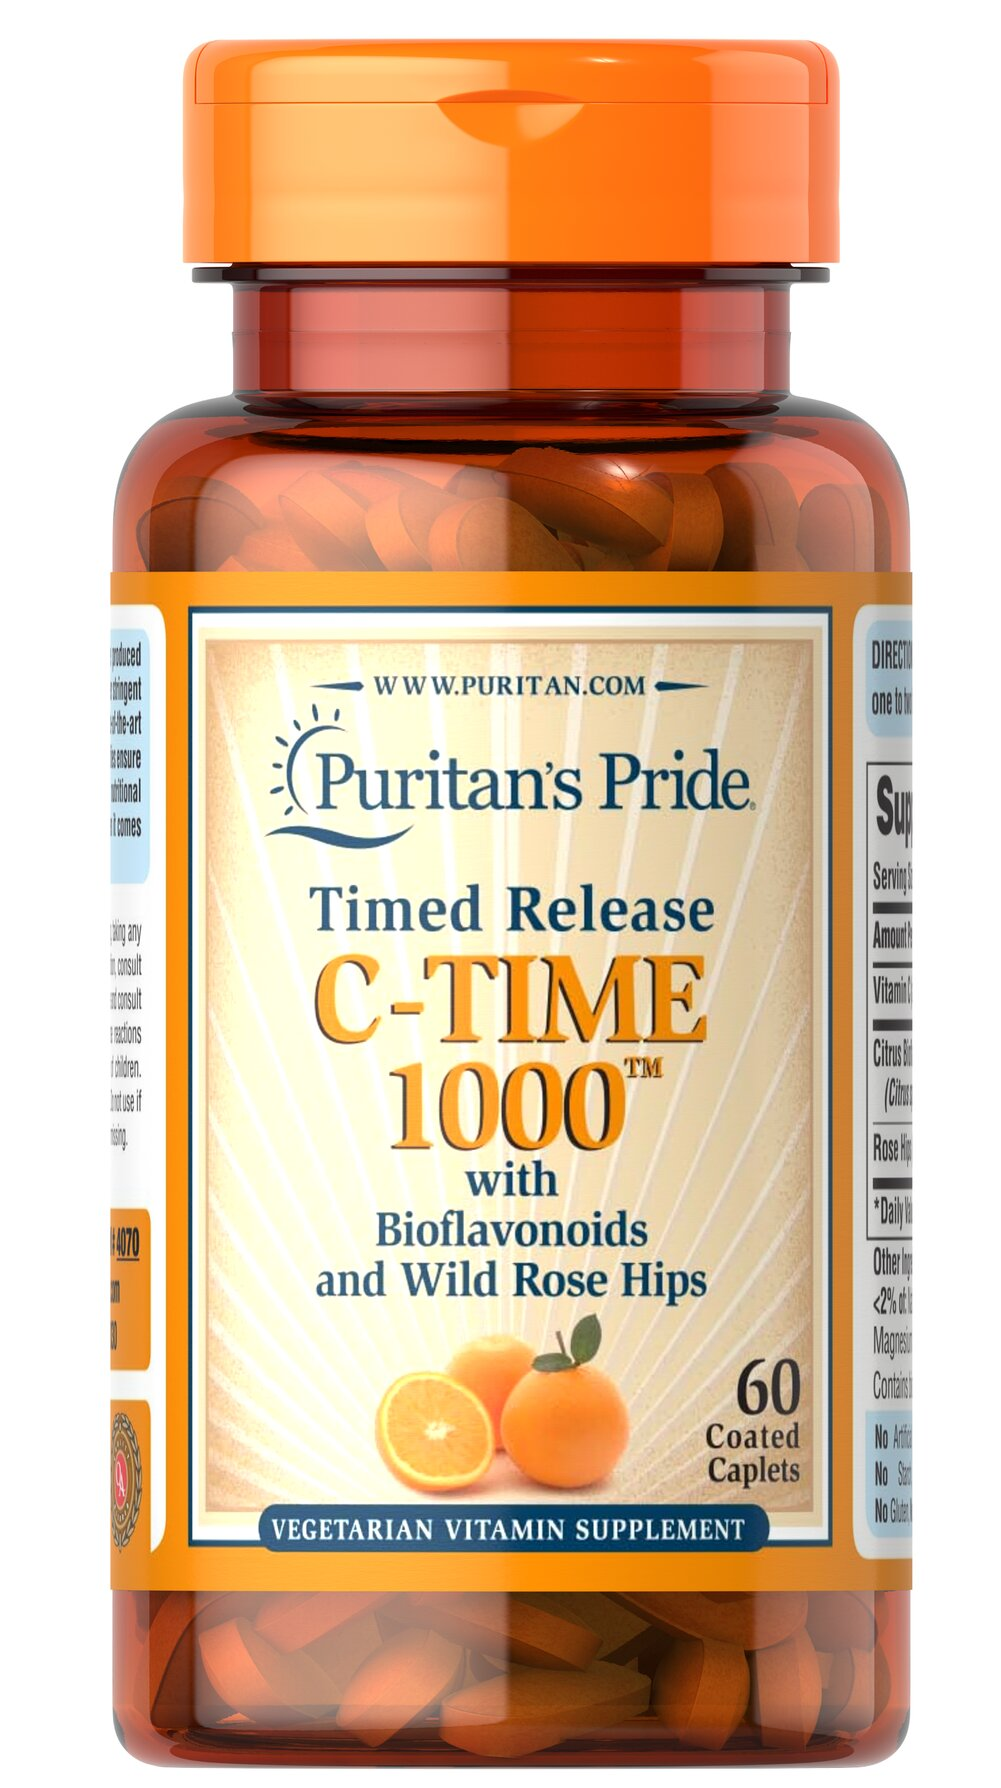 Vitamin C-1000 mg with Rose Hips Timed Release <p><strong>Time Released</strong></p><p>Vitamin C is essential to many functions in the body. It is one of the leading vitamins for immune support and helps fight cell-damaging free radicals. ** Ours includes Rose Hips--one of the most concentrated sources of Vitamin C available.</p>This product has been designed to be released over a prolonged period of time.<p></p><p>Offers superior antioxidant